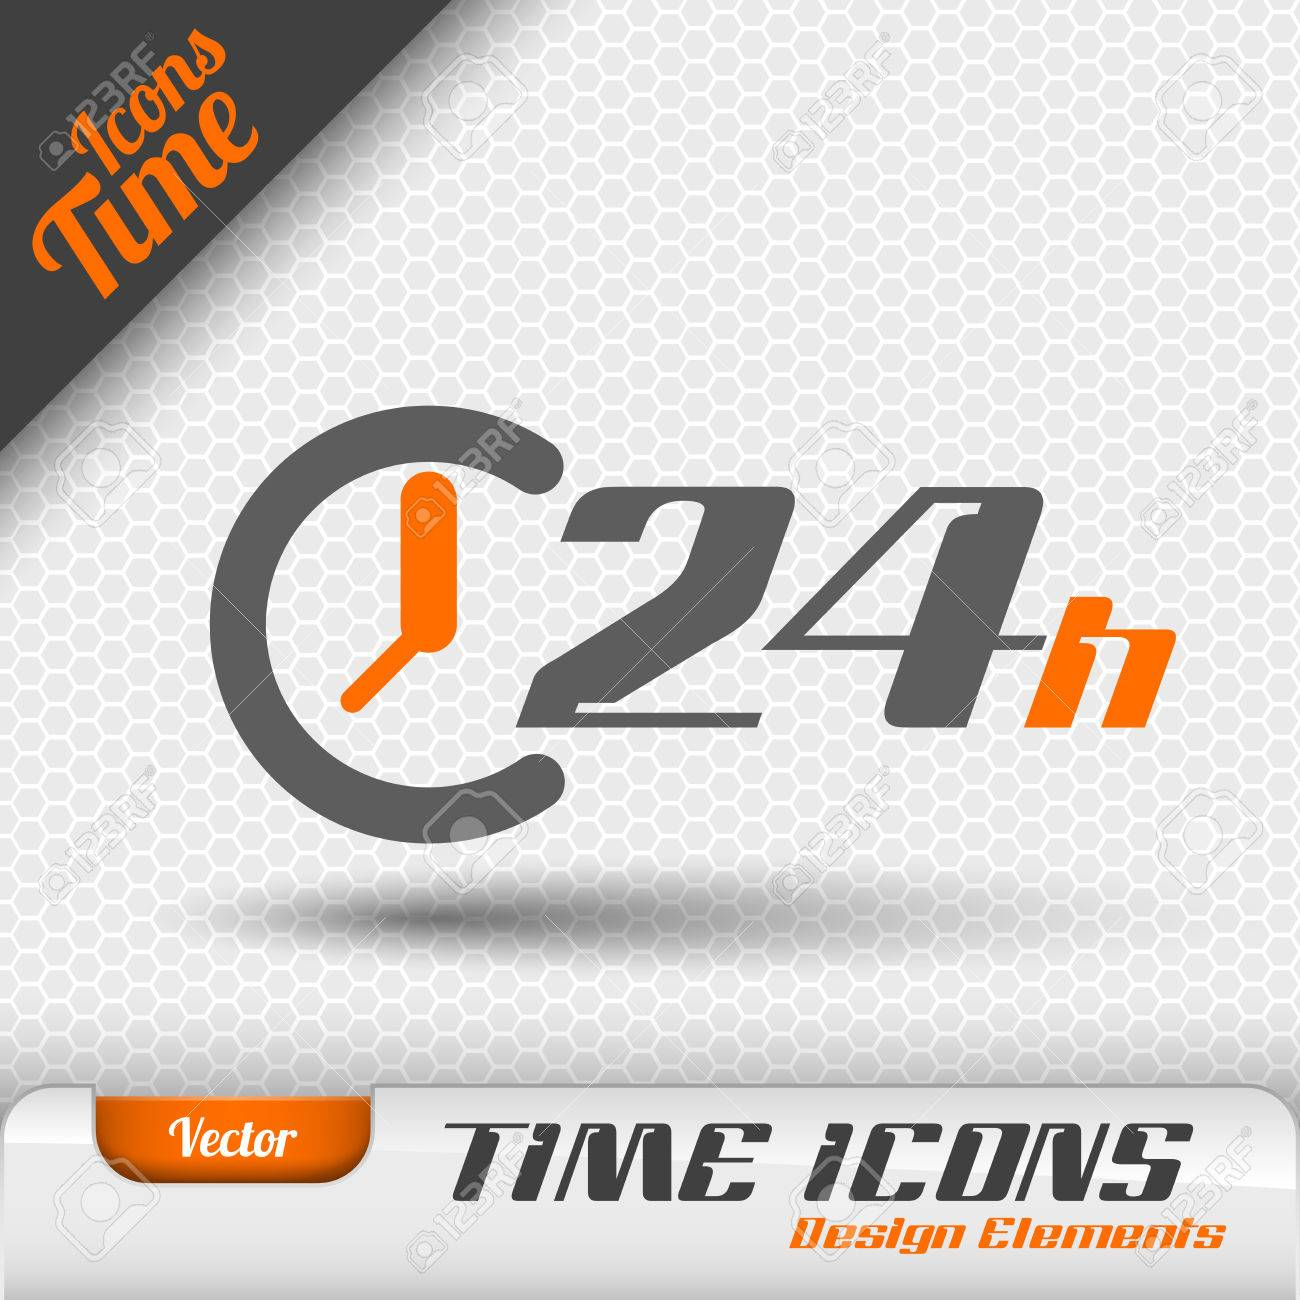 Time icon on the gray background. 24 hours symbol. Vector design elements. - 48754234